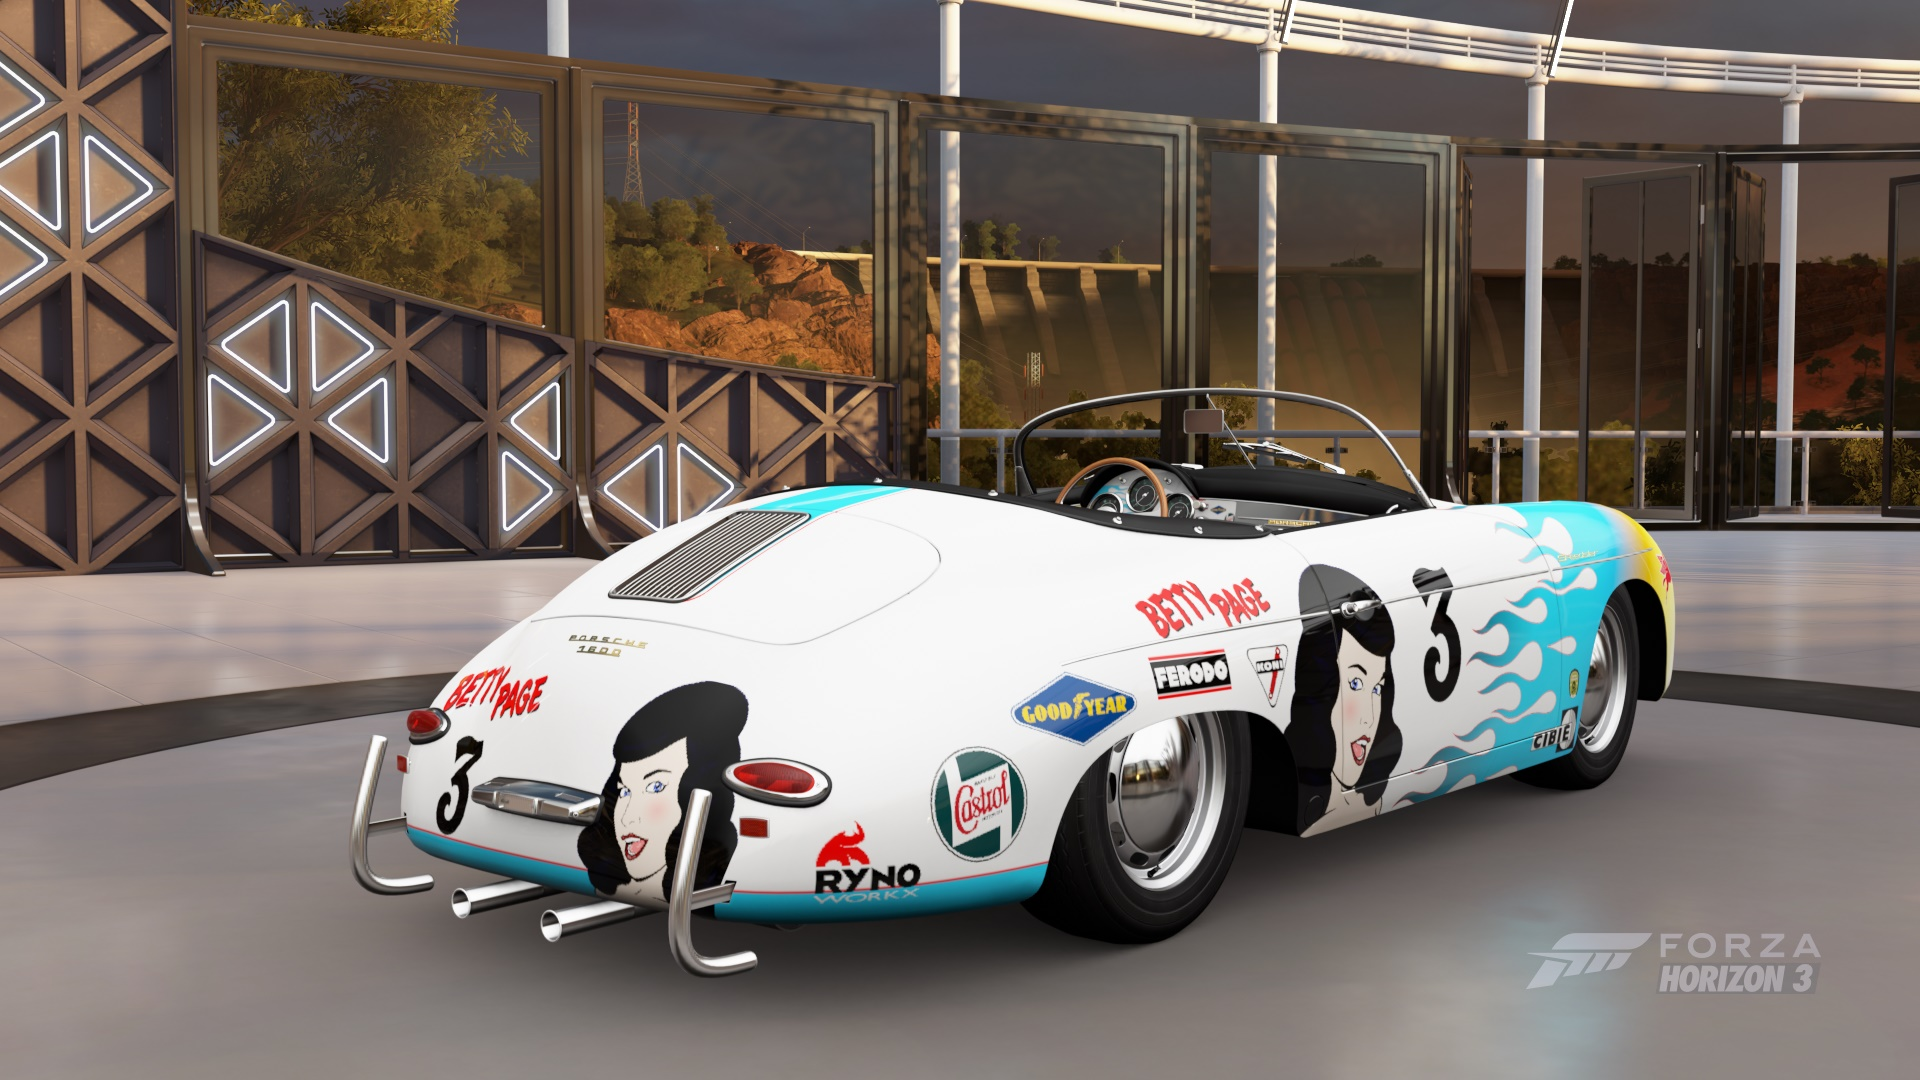 forza horizon 3 livery contests 32 community events forza motorsport forums. Black Bedroom Furniture Sets. Home Design Ideas